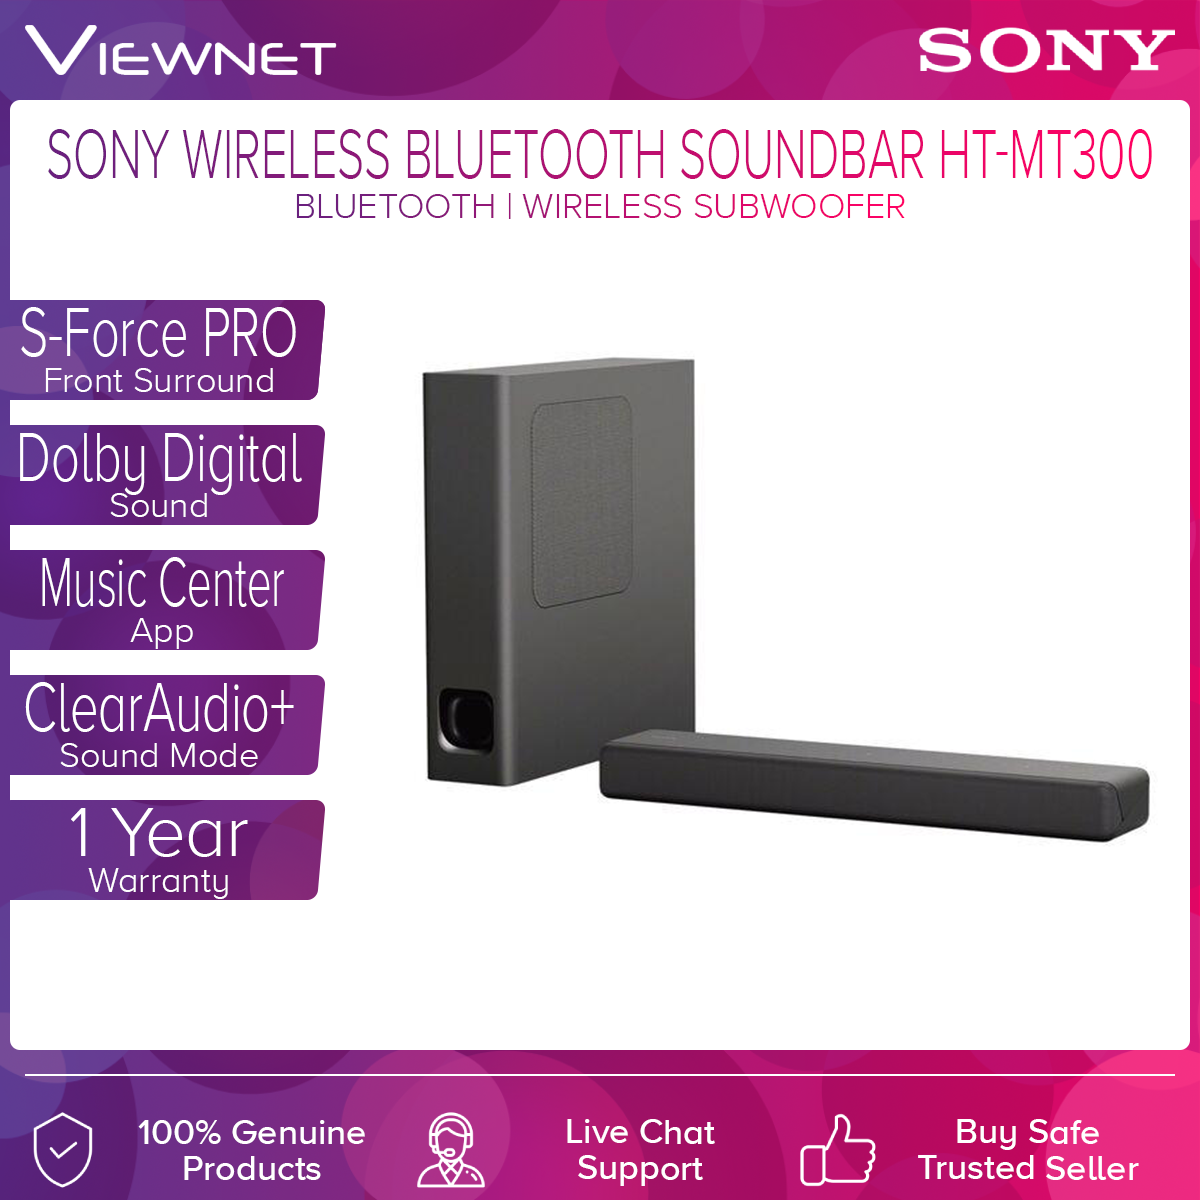 Sony HT-MT300 2.1CH Compact Single Sound Bar with Subwoofer (SO-CE-HT-MT300/B), Black, Bluetooth Technology Black, Immersive sound.